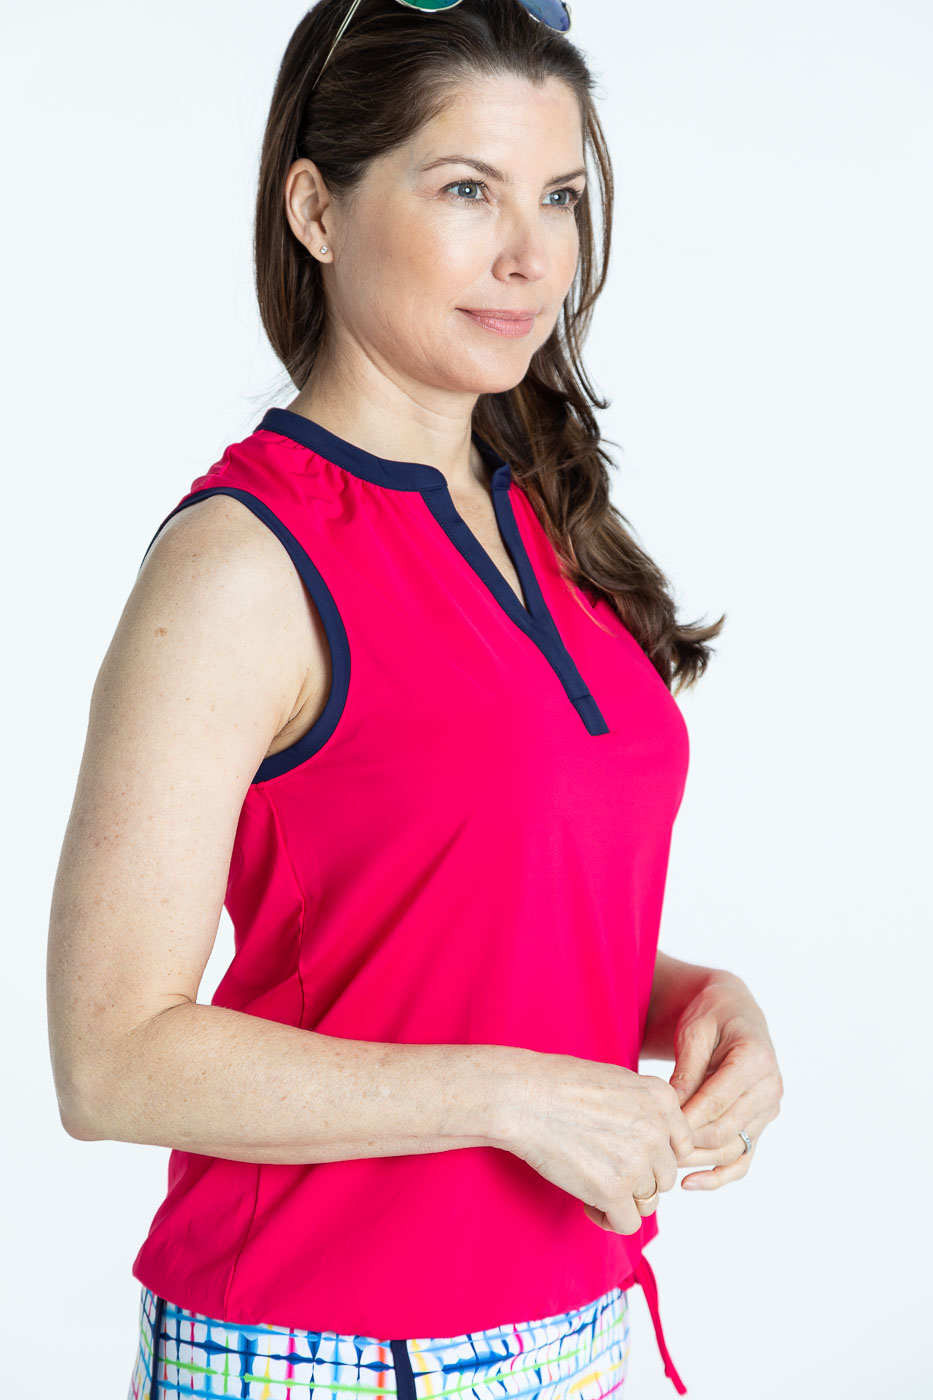 Closer view of woman golfer in raspberry red Free and Easy Sleeveless Golf Shirt